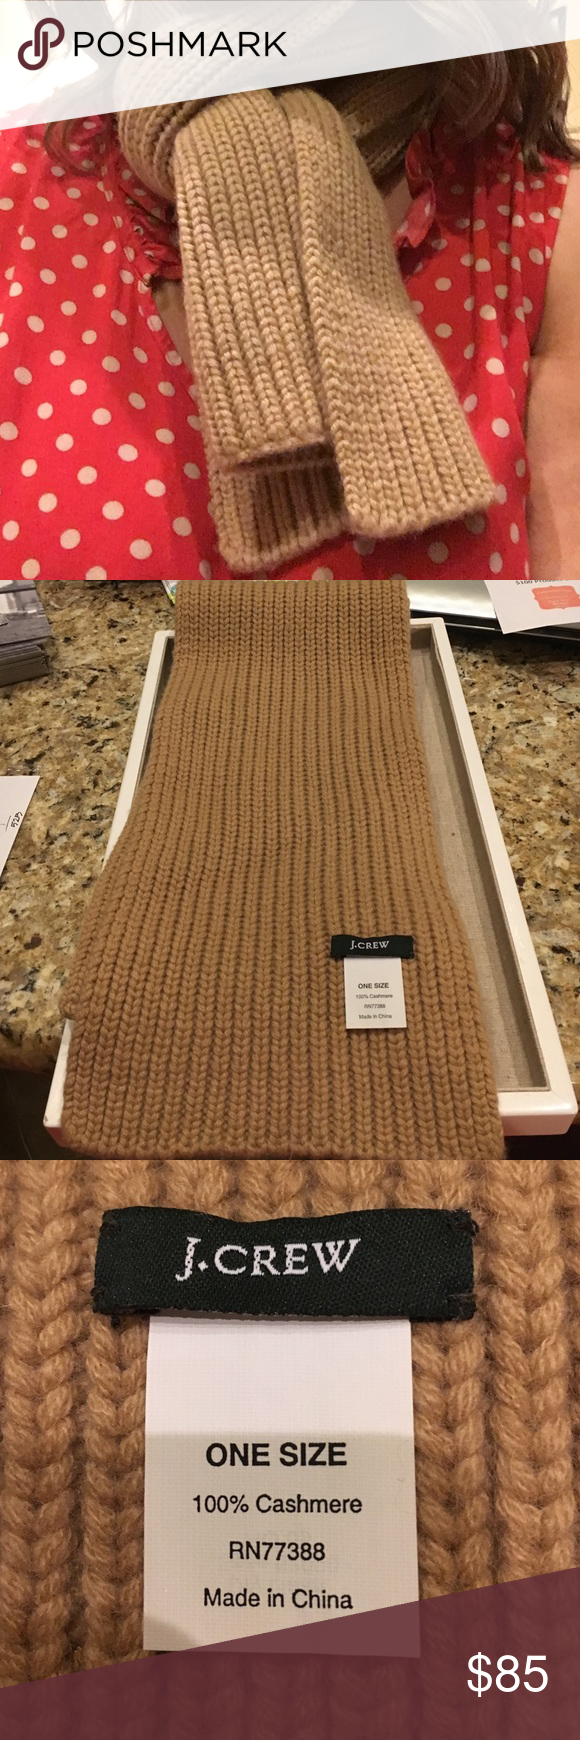 """JCREW Camel 100% Cashmere Chunky Ribbed Knit Scarf Super soft and cozy, 100% cashmere scarf in beautiful camel neutral color.  Perfect for fall.  Worn once, stored in smoke free home.  Length 54"""" width 6"""".  Bundle up! J. Crew Accessories Scarves & Wraps"""